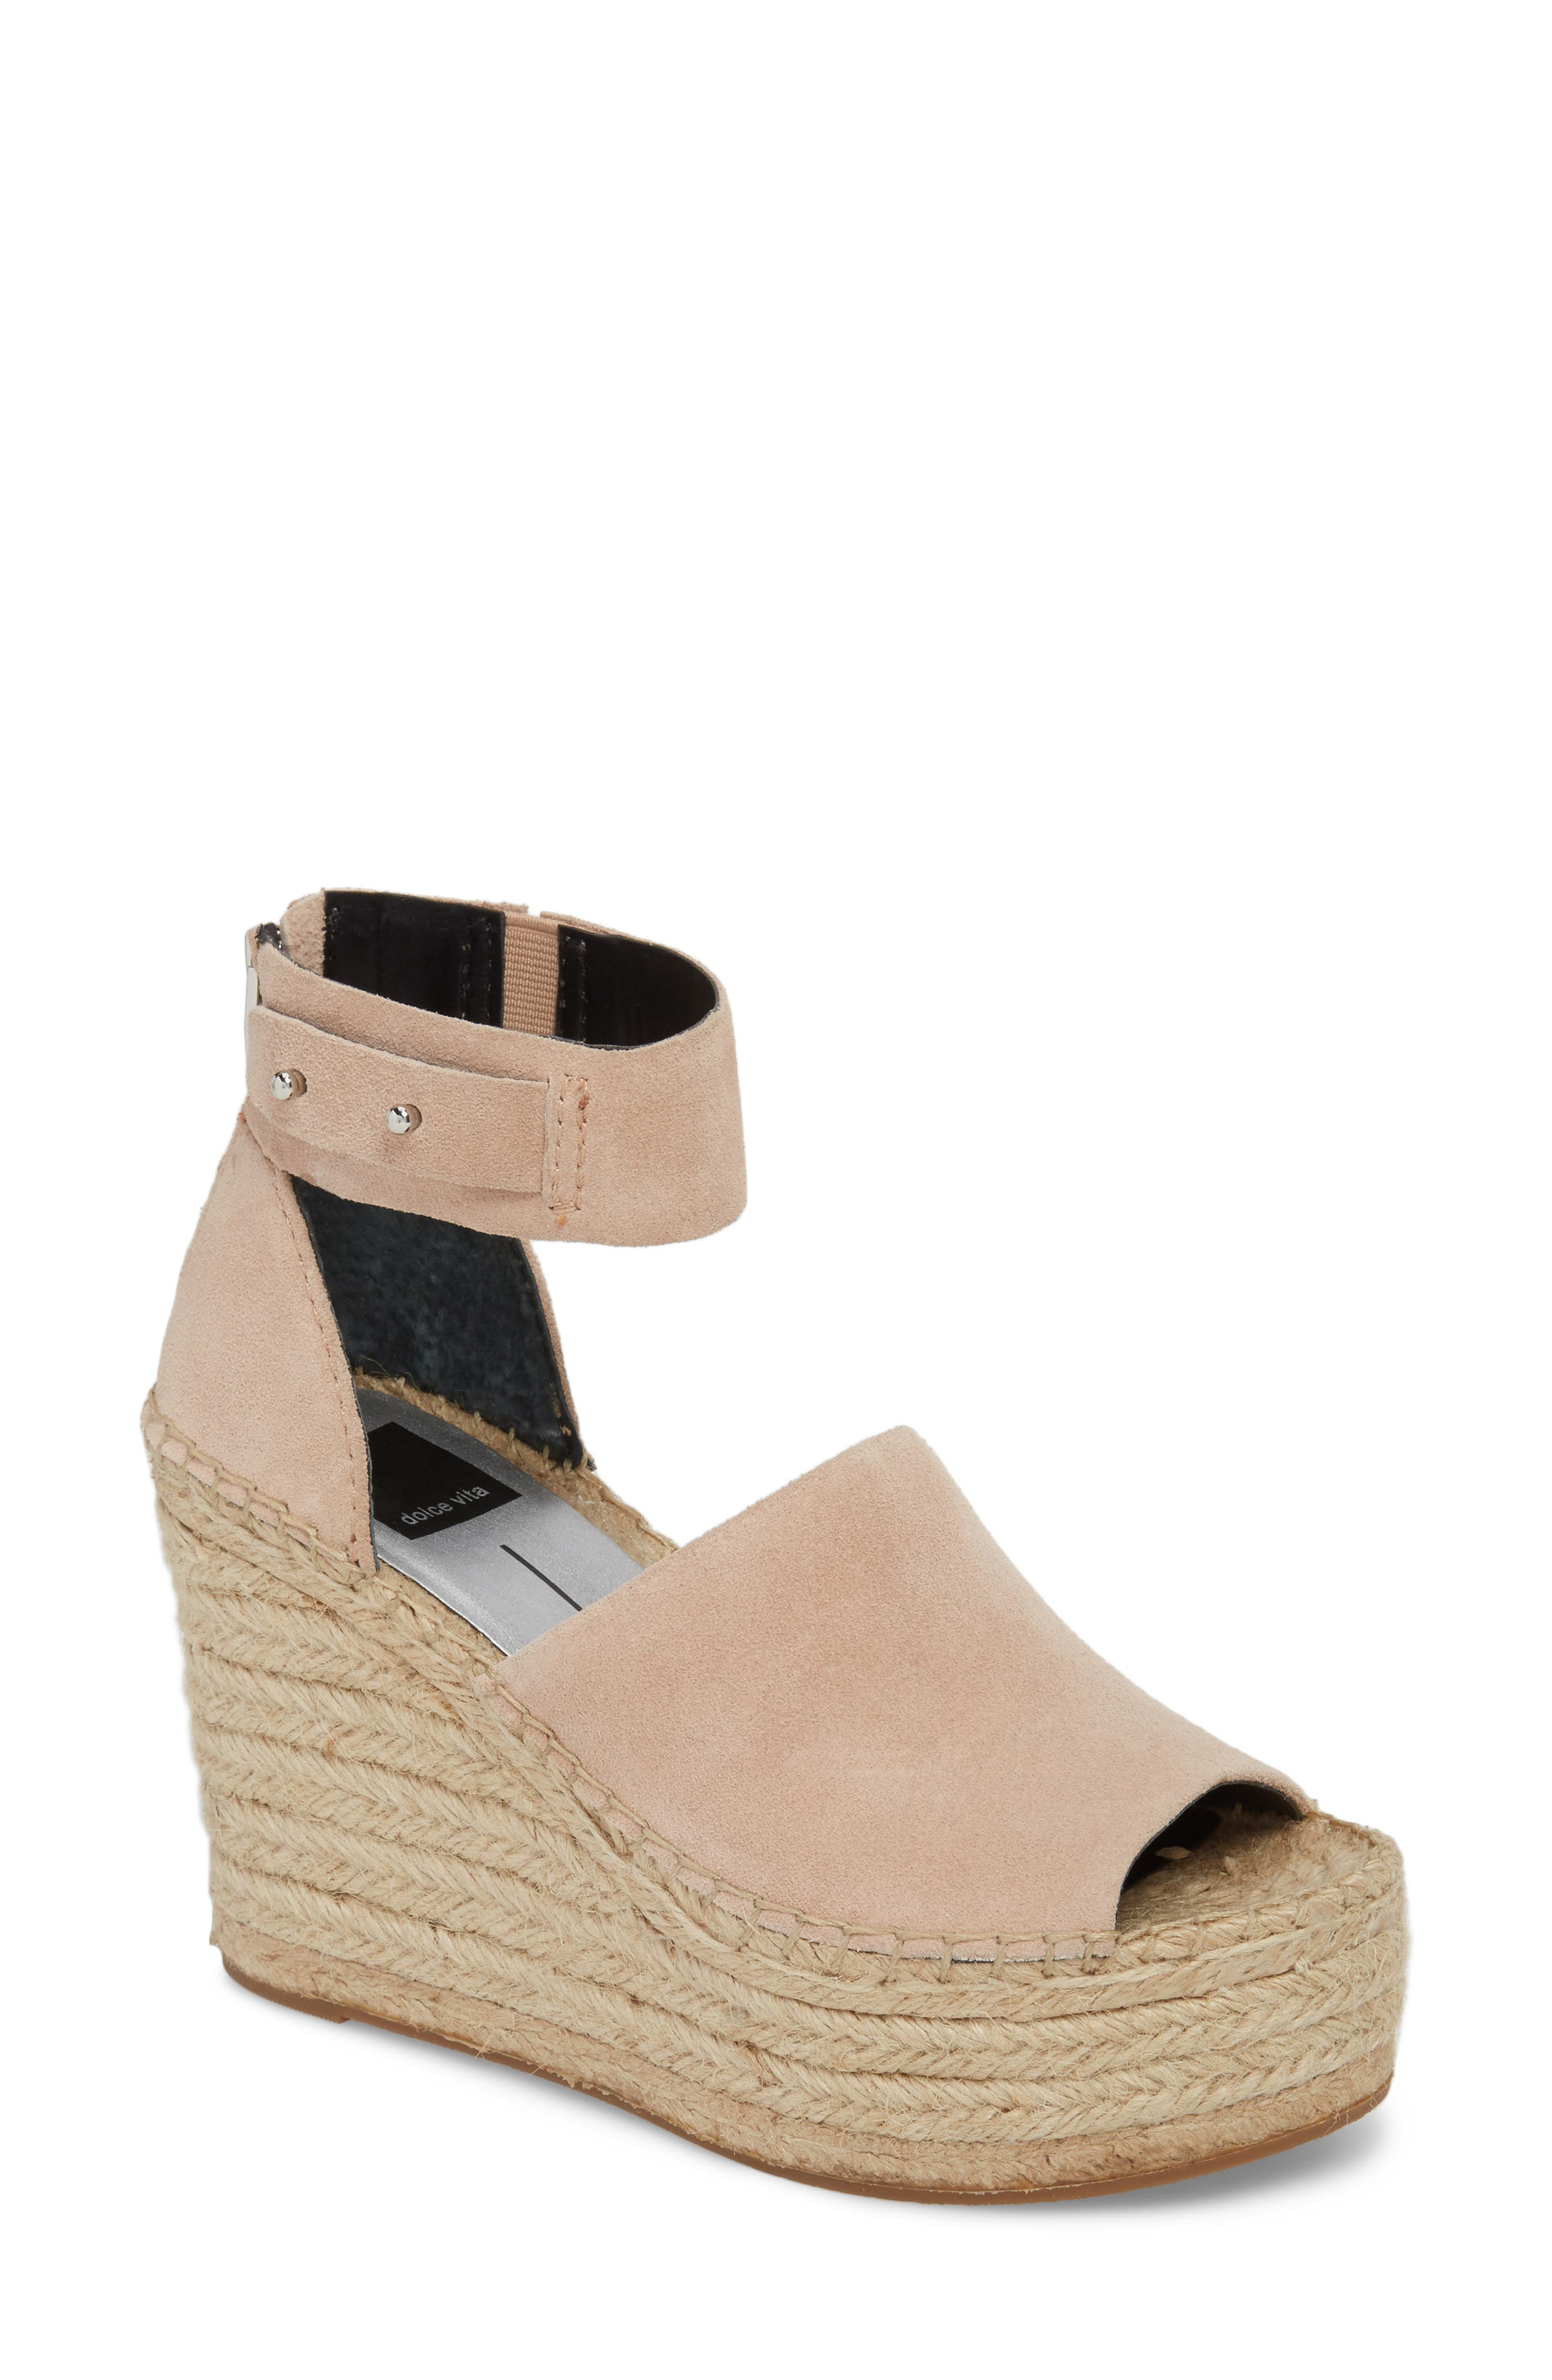 STRAW WEDGE ESPADRILLE SANDAL